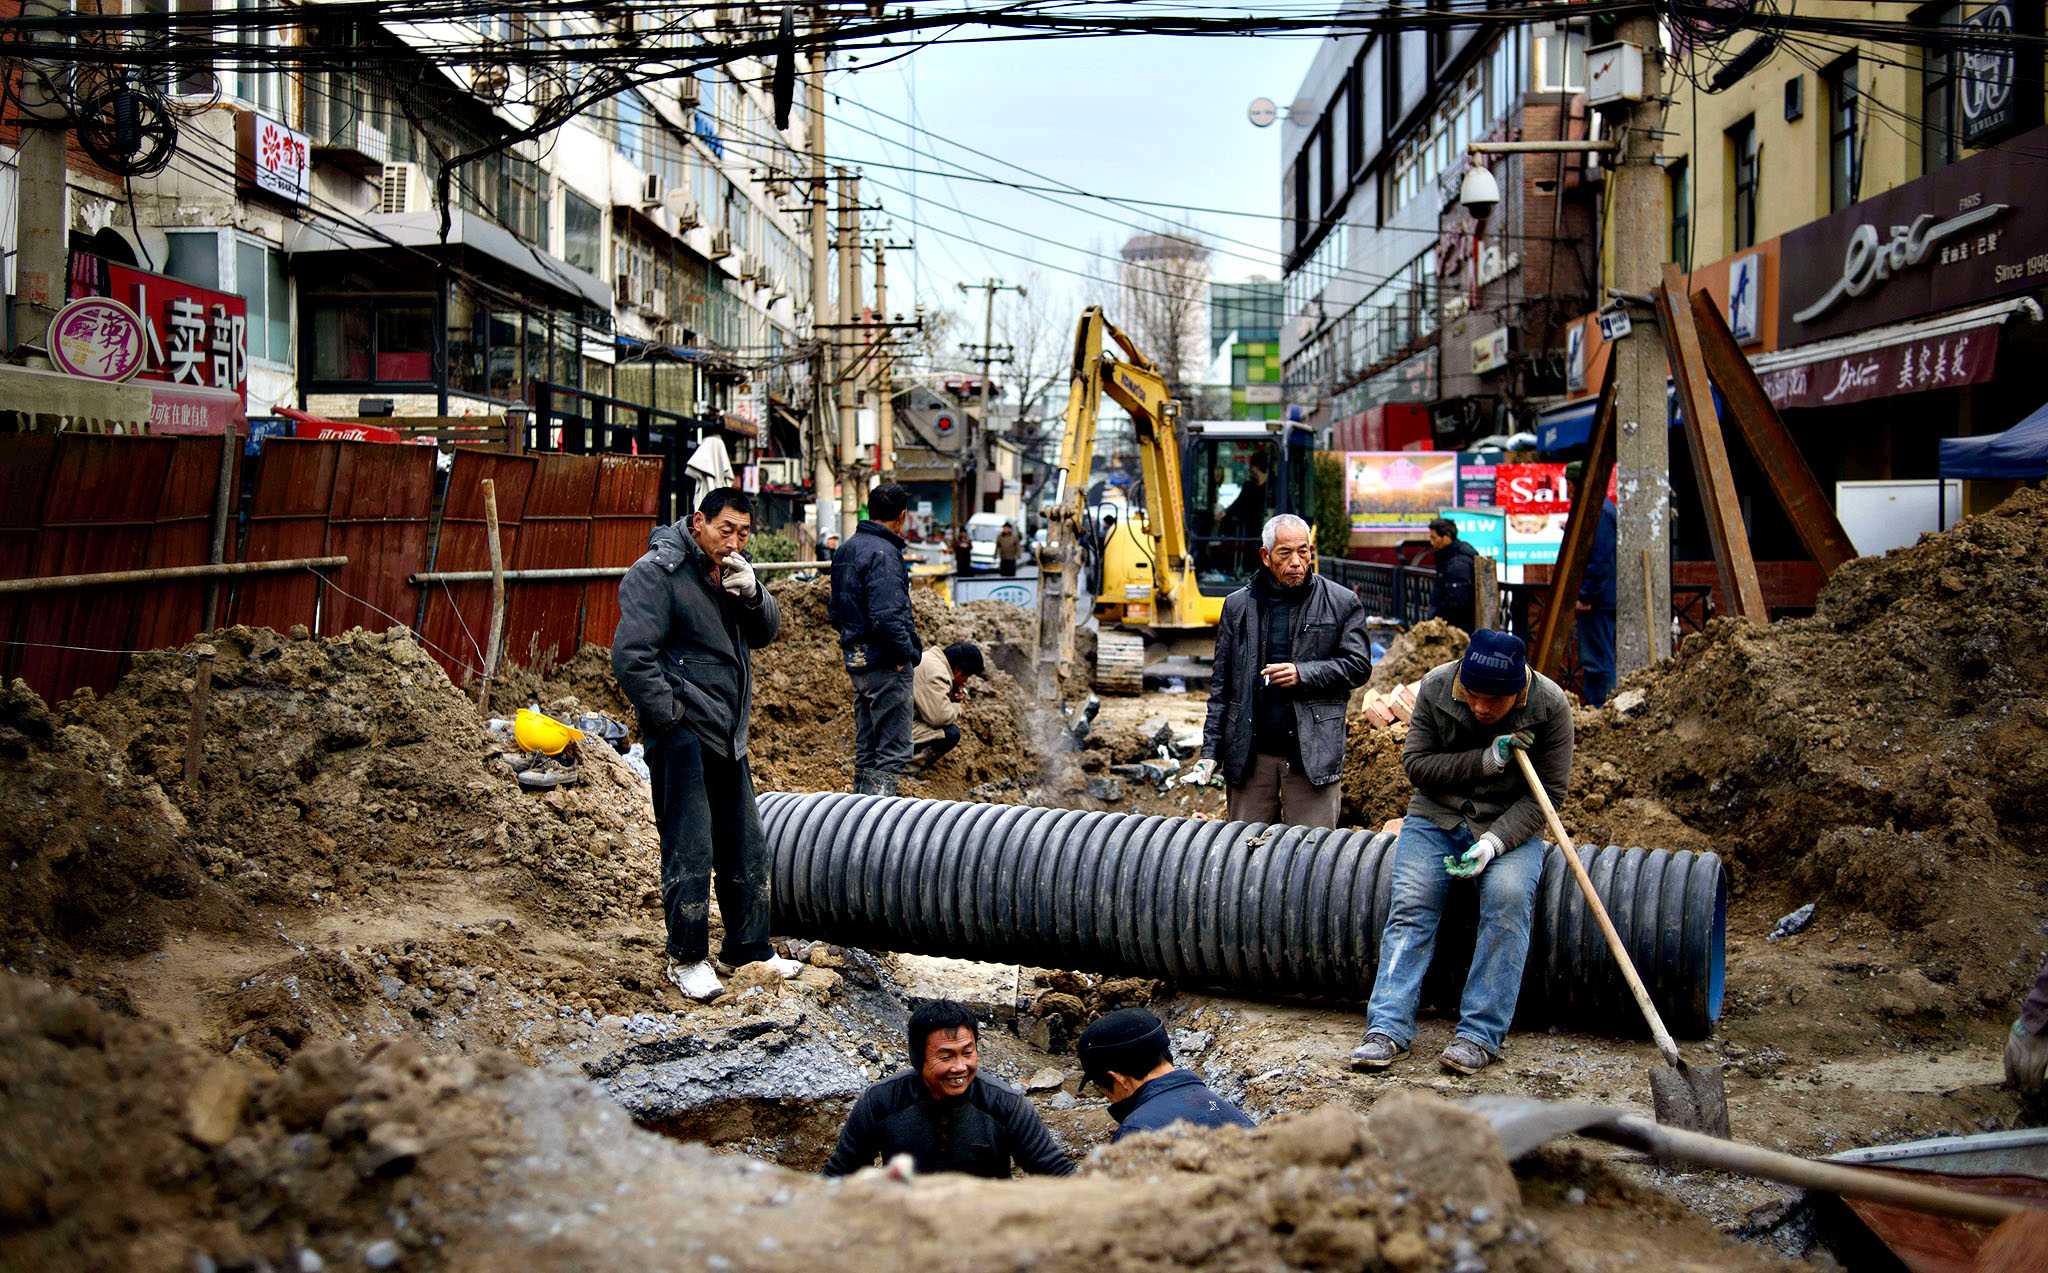 Workers undertake drainage repairs on a street on a commercial street in Beijing on December 10, 2013. Chinese inflation decelerated to 3.0 percent in November, the National Bureau of Statistics (NBS) said, well under the government's target for the year.